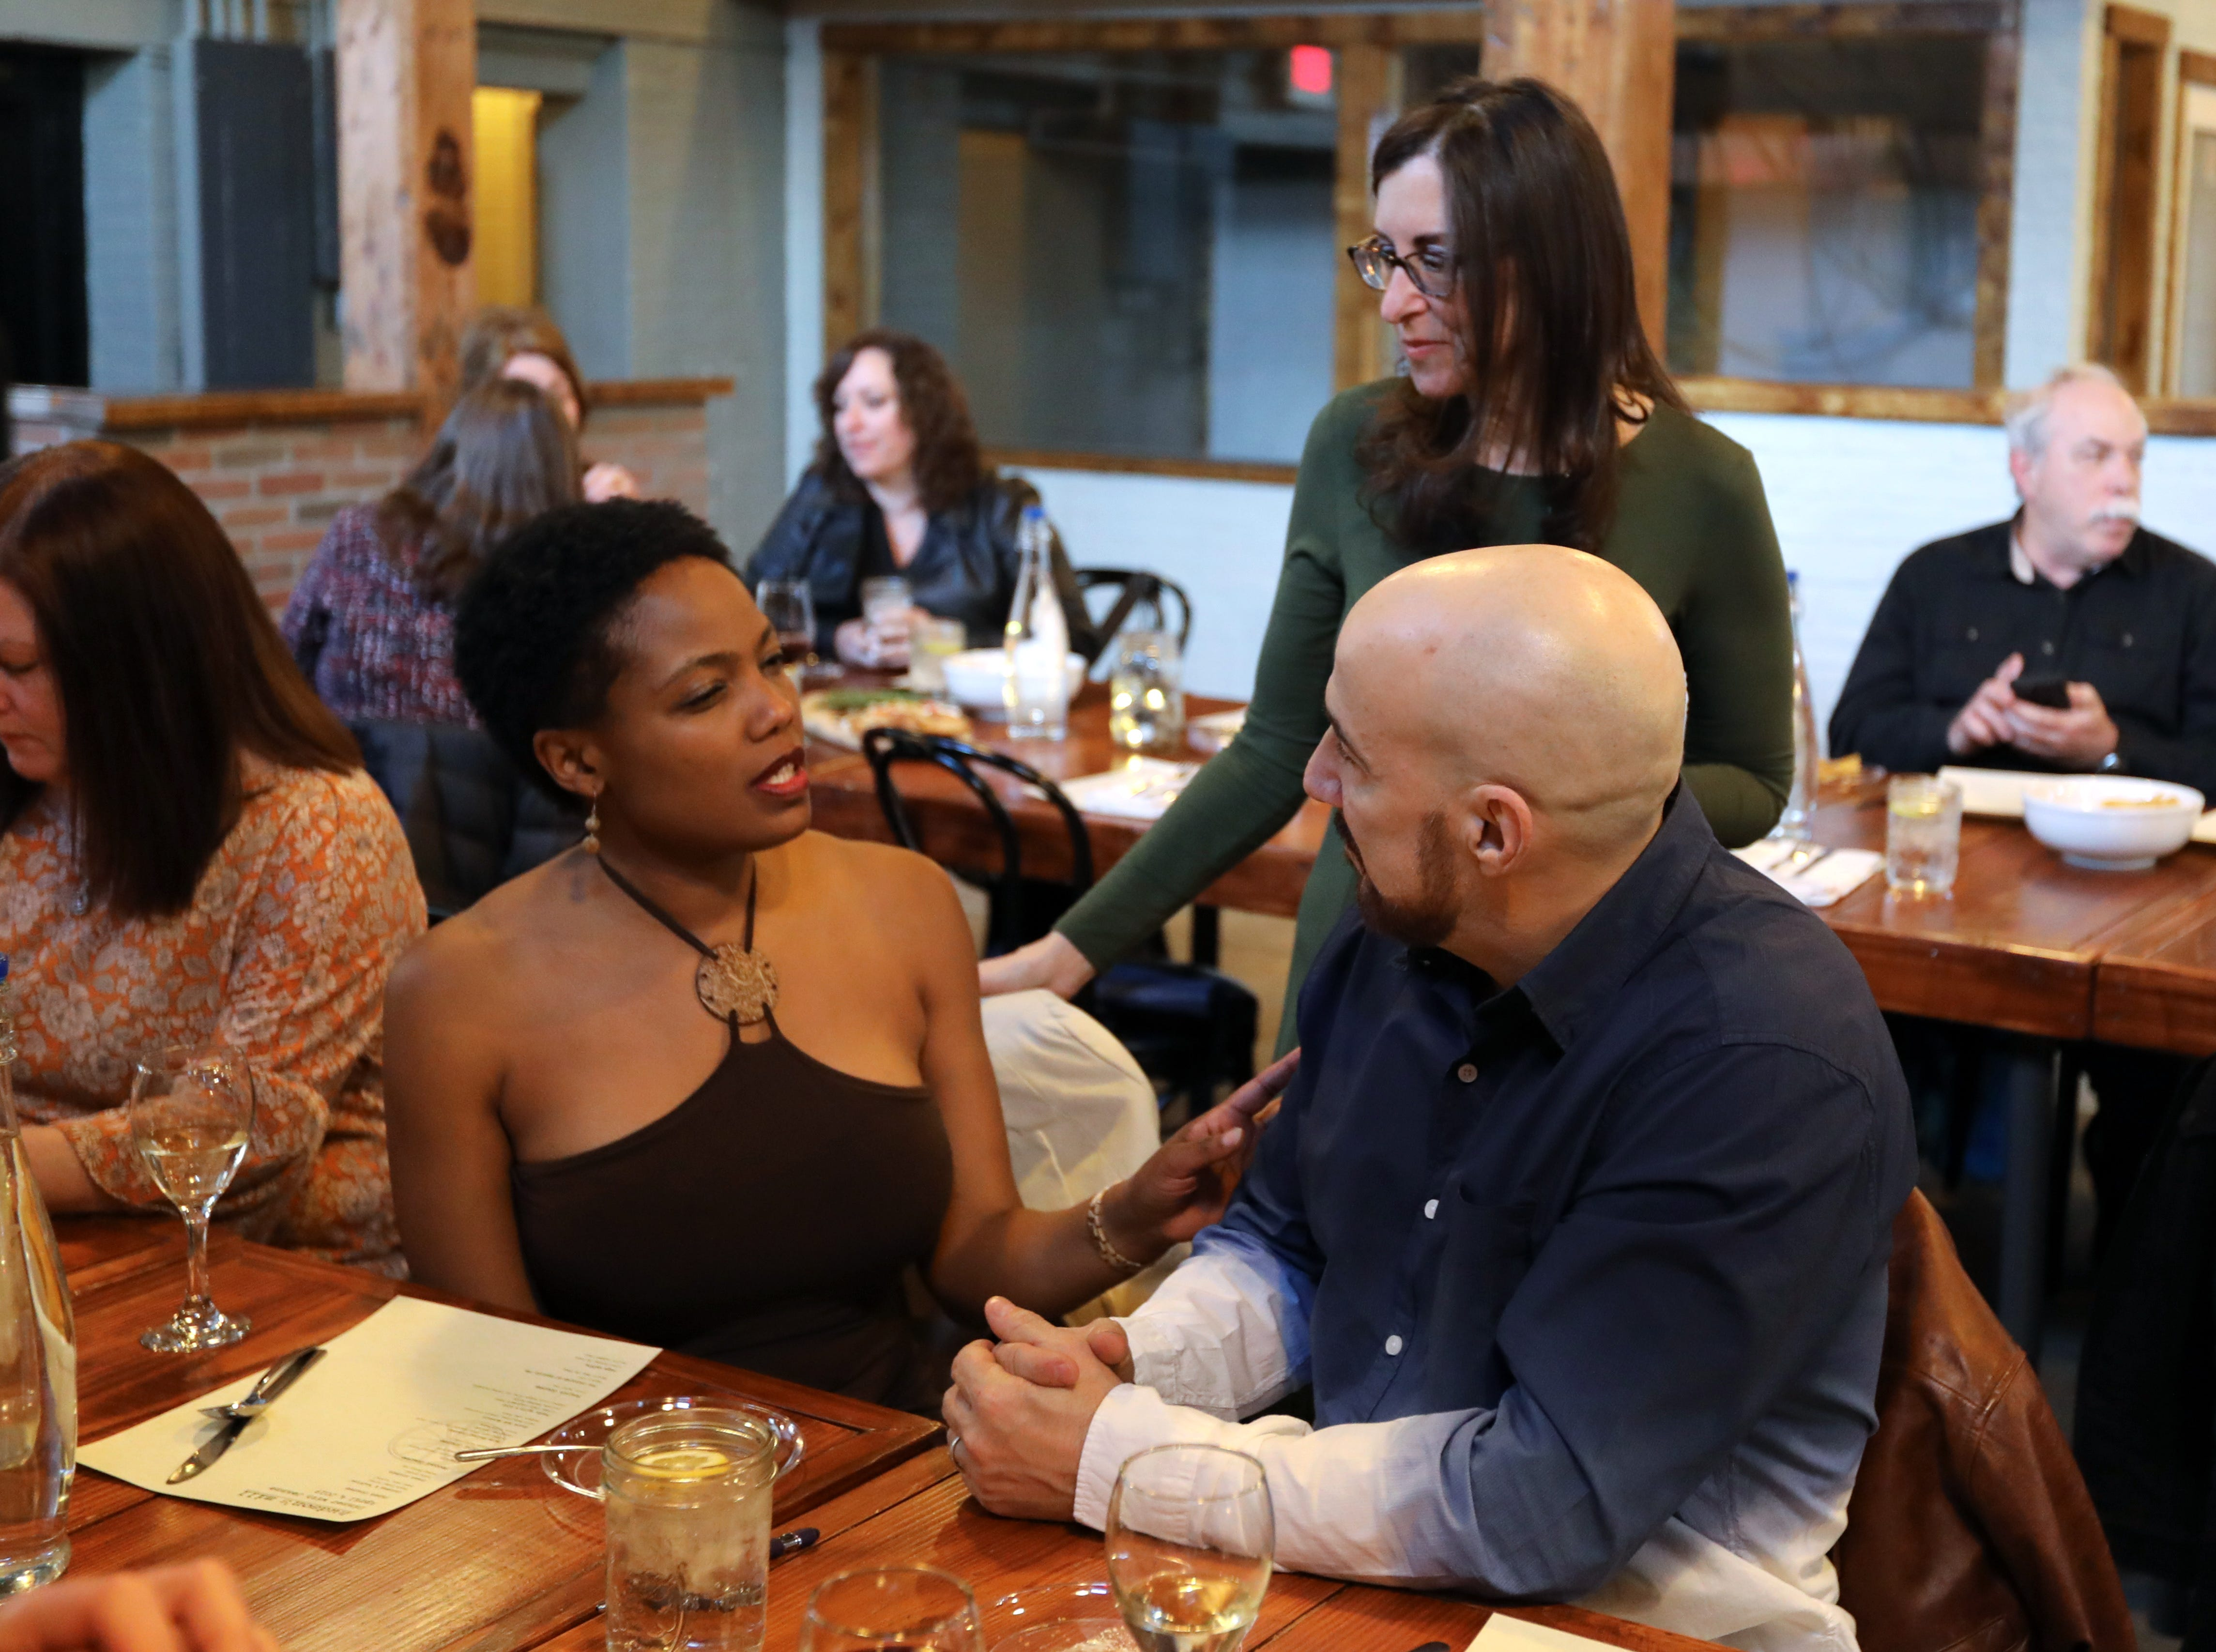 """Gleny and Mike Criscione of Stony Point talk with Jeanne Muchnick during """"Dinner with Jeanne"""" at Hudson's Mill Tavern in Garnerville April 4, 2019."""